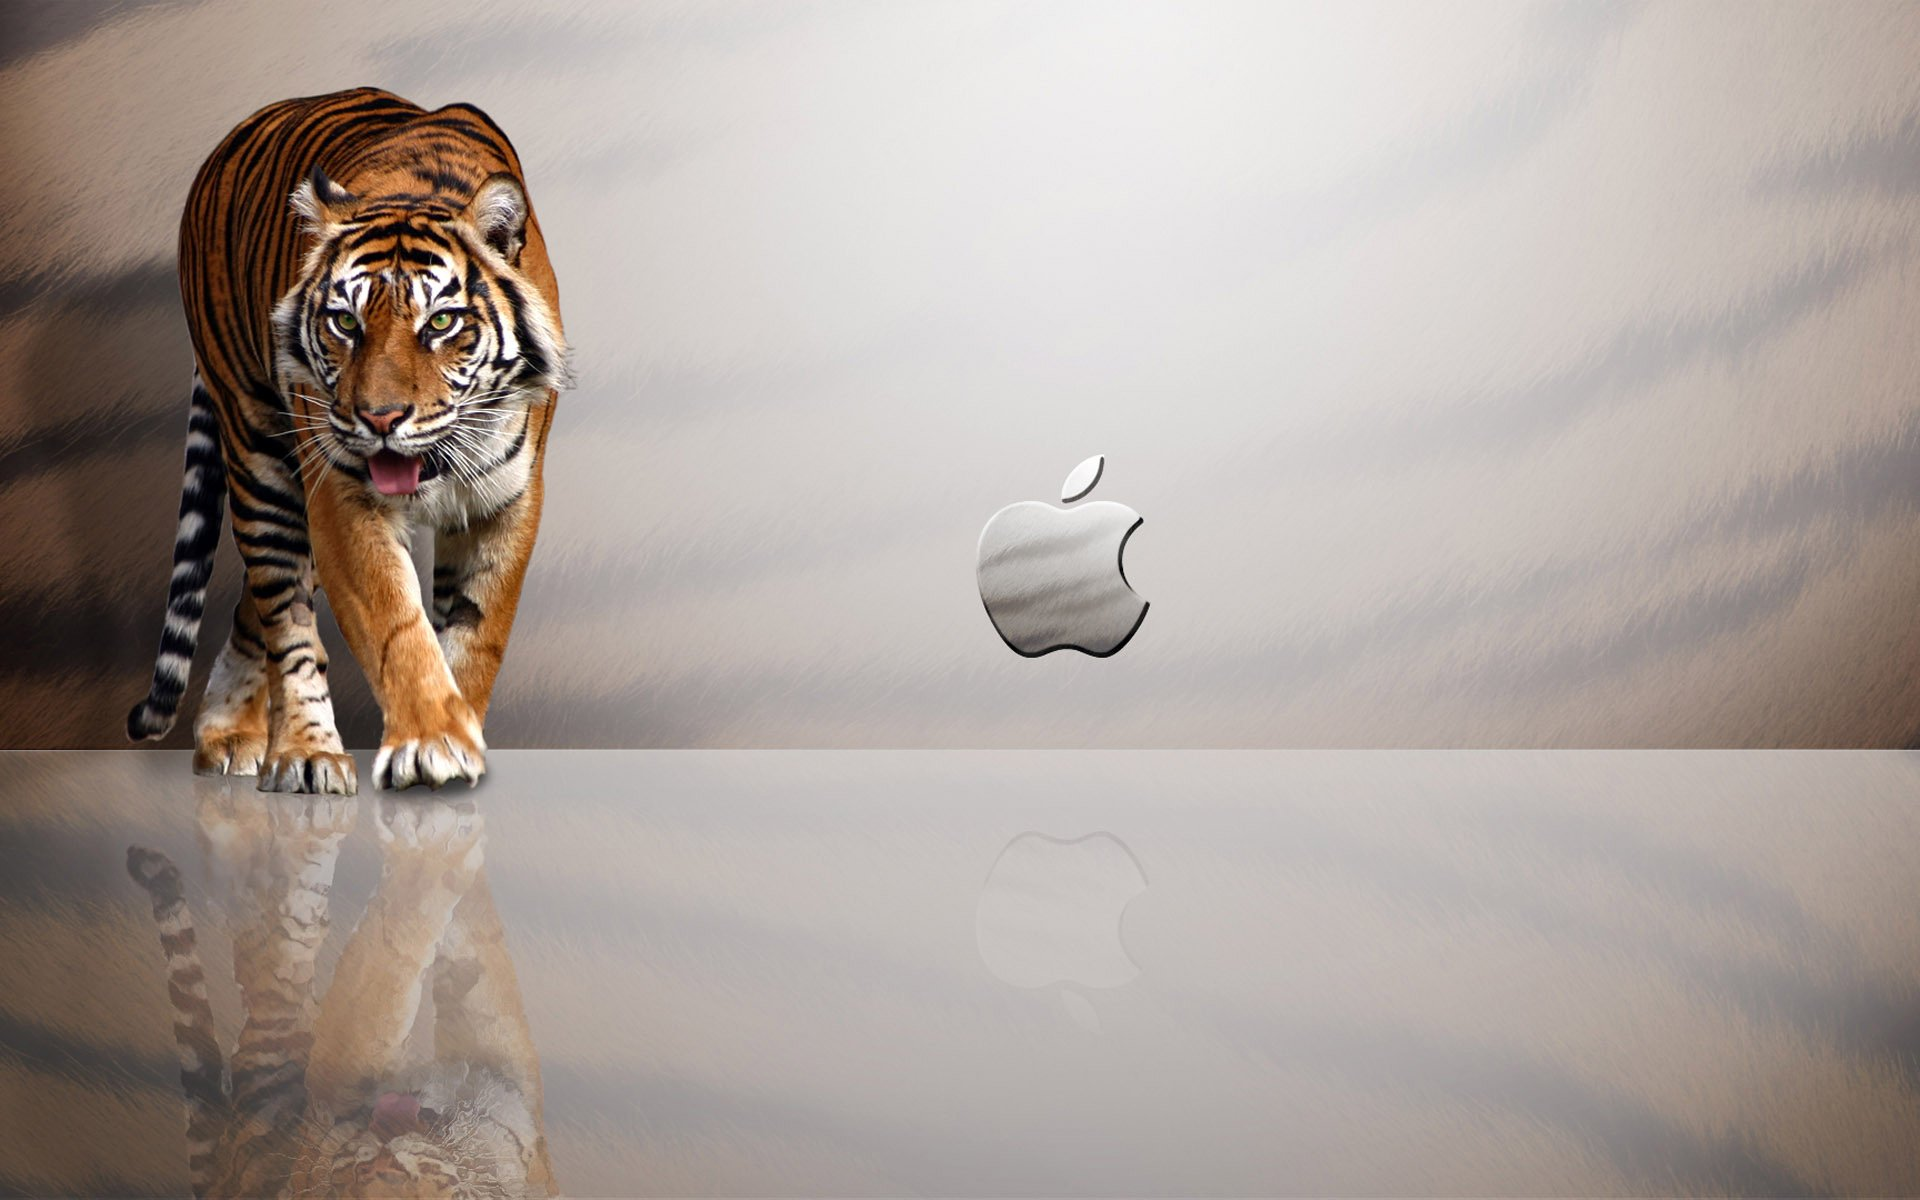 Mac OS X Snow Leopard Wallpaper Download 1920x1200